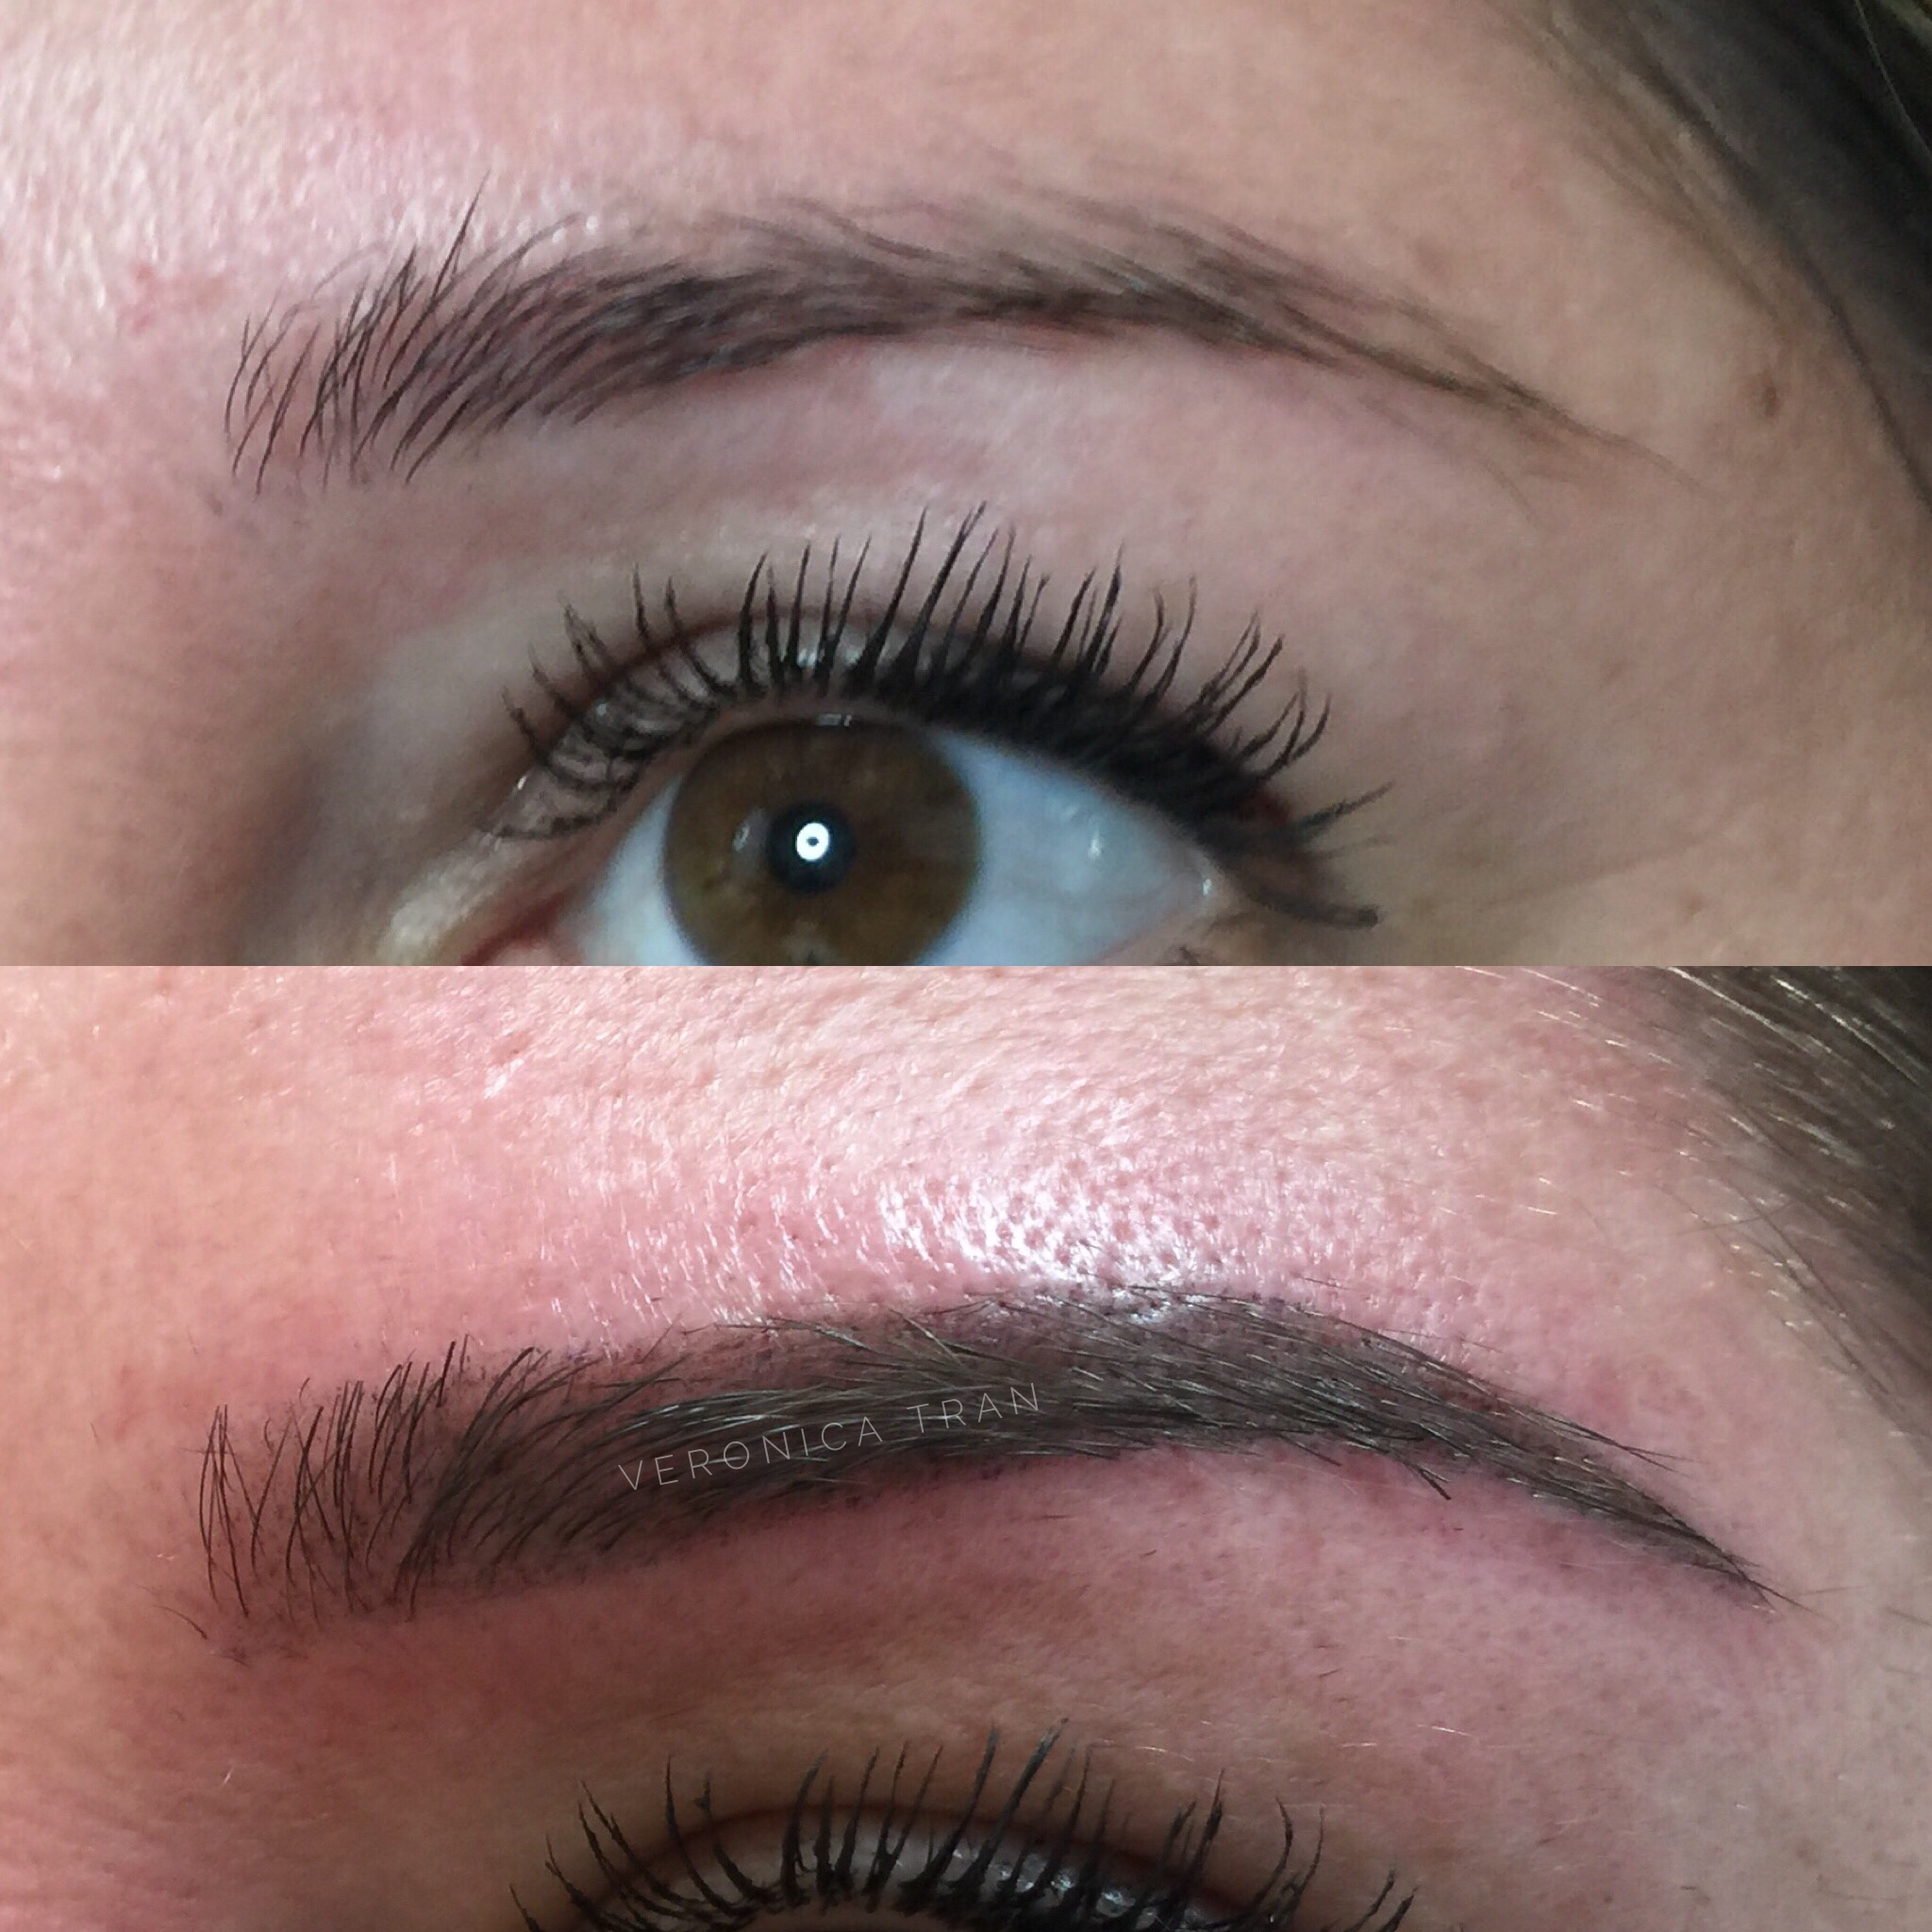 Pin by Rosie Ward on Makeup Eyebrow embroidery, Cosmetic